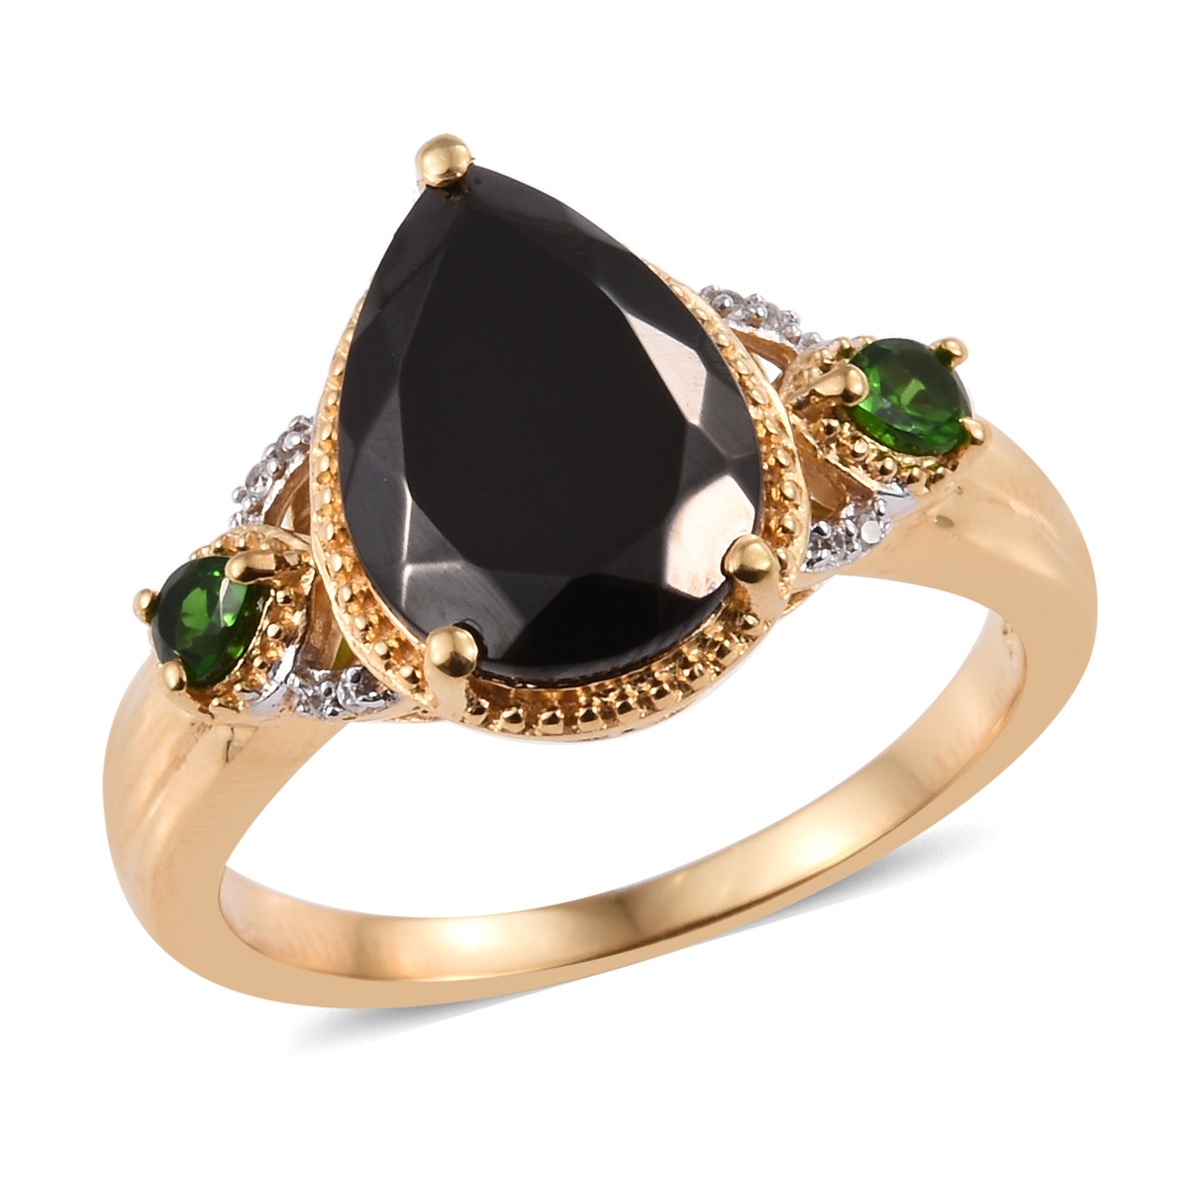 Shungite, Multi Gemstone Ring in Vermeil YG Over Sterling Silver (Size 8.0) 3.70 ctw